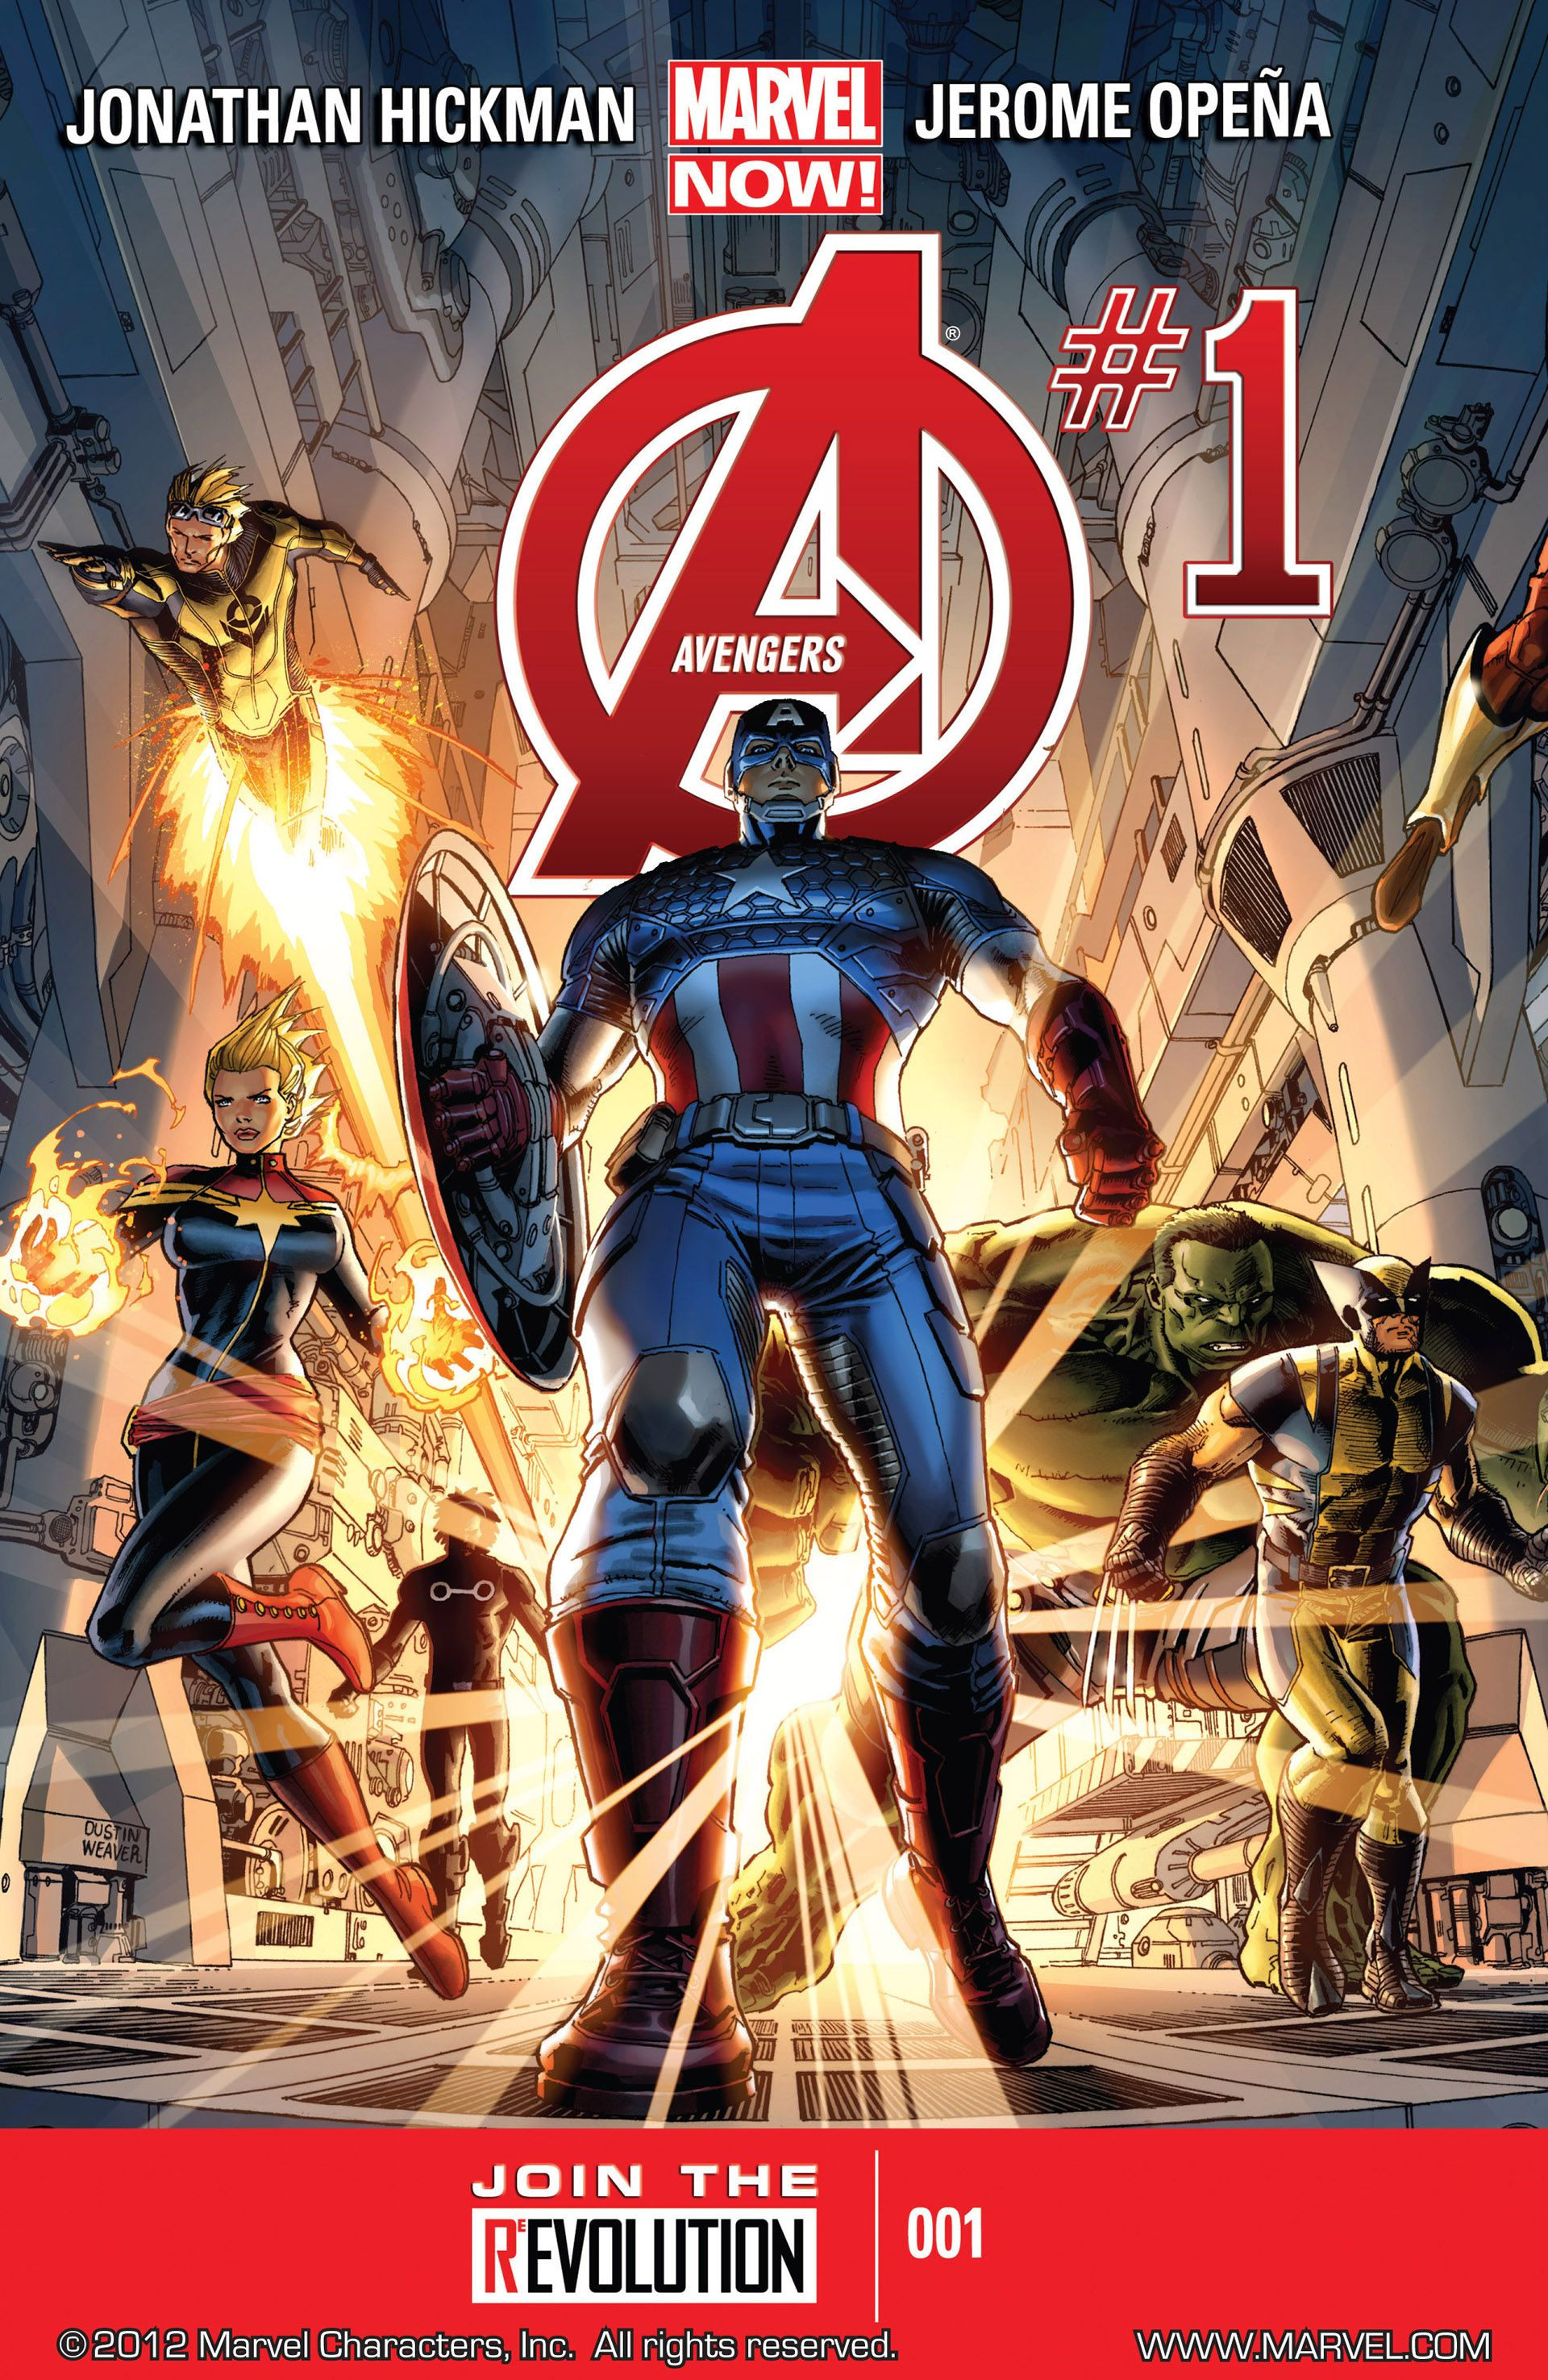 Avengers Vol.5 #1-44 + Annual (2013-2015) Complete